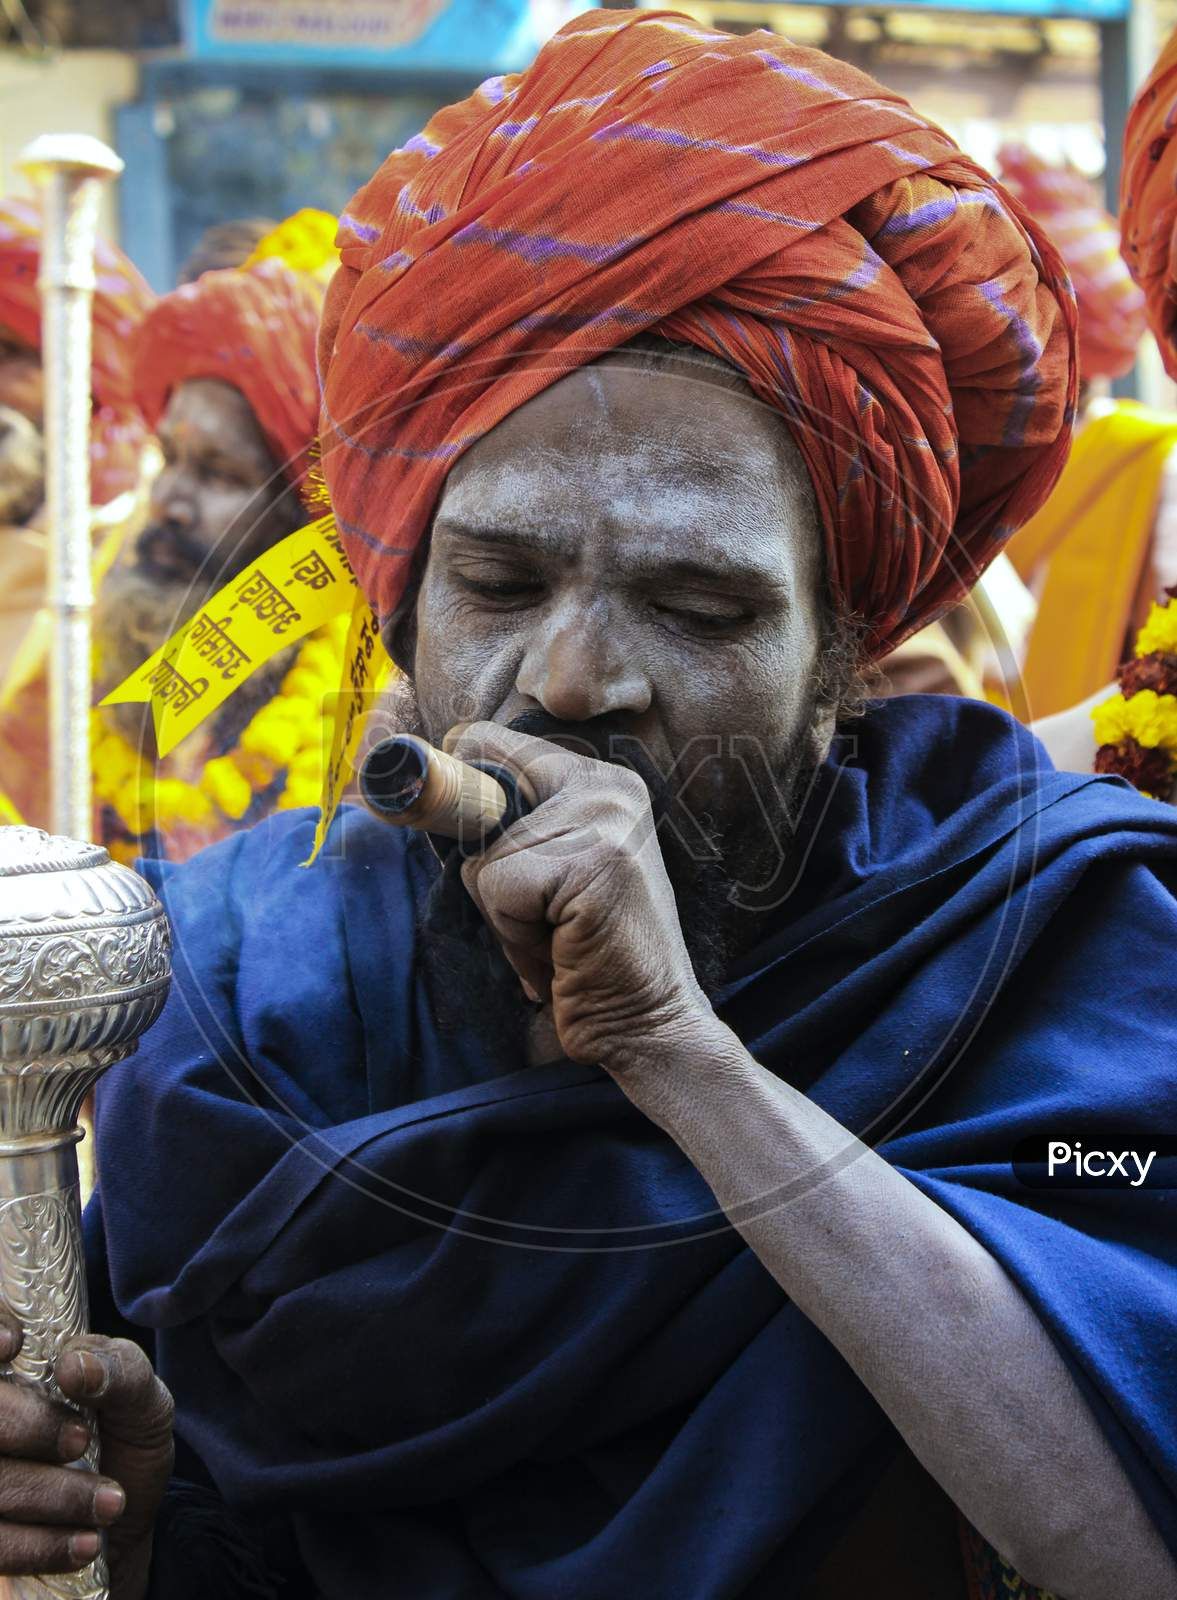 A Naga Sadhu Smoking Chillam